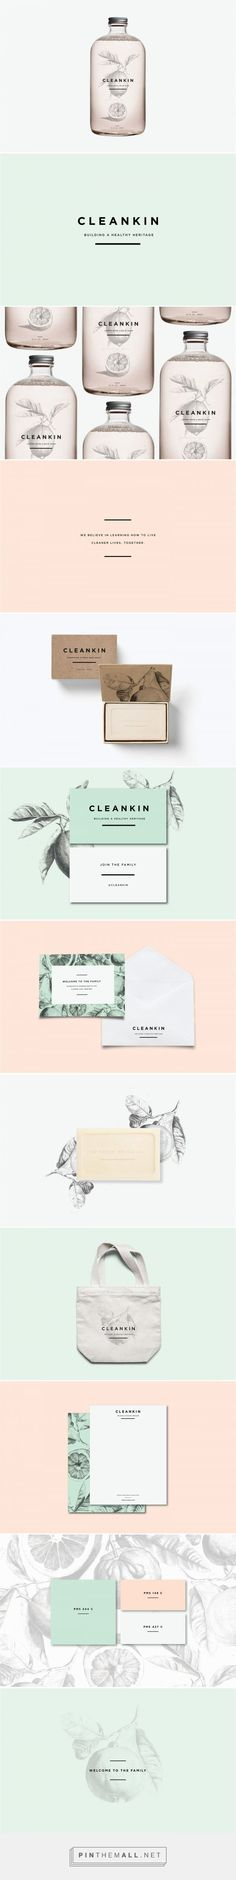 CLEANKIN Natural Cleaning Products Branding and Packaging by Marks and Maker   Fivestar Branding Agency – Design and Branding Agency & Curated Inspiration Gallery #branding #packaging #design #designinspiration